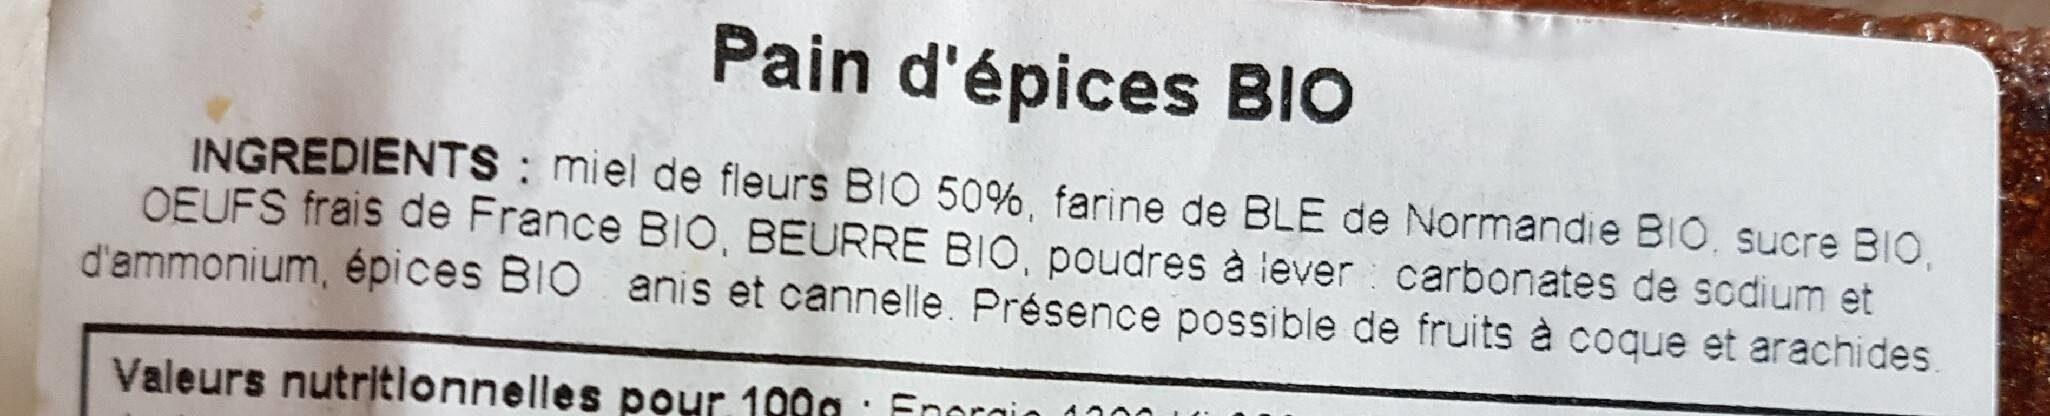 Pain d'épices BIO - Ingredients